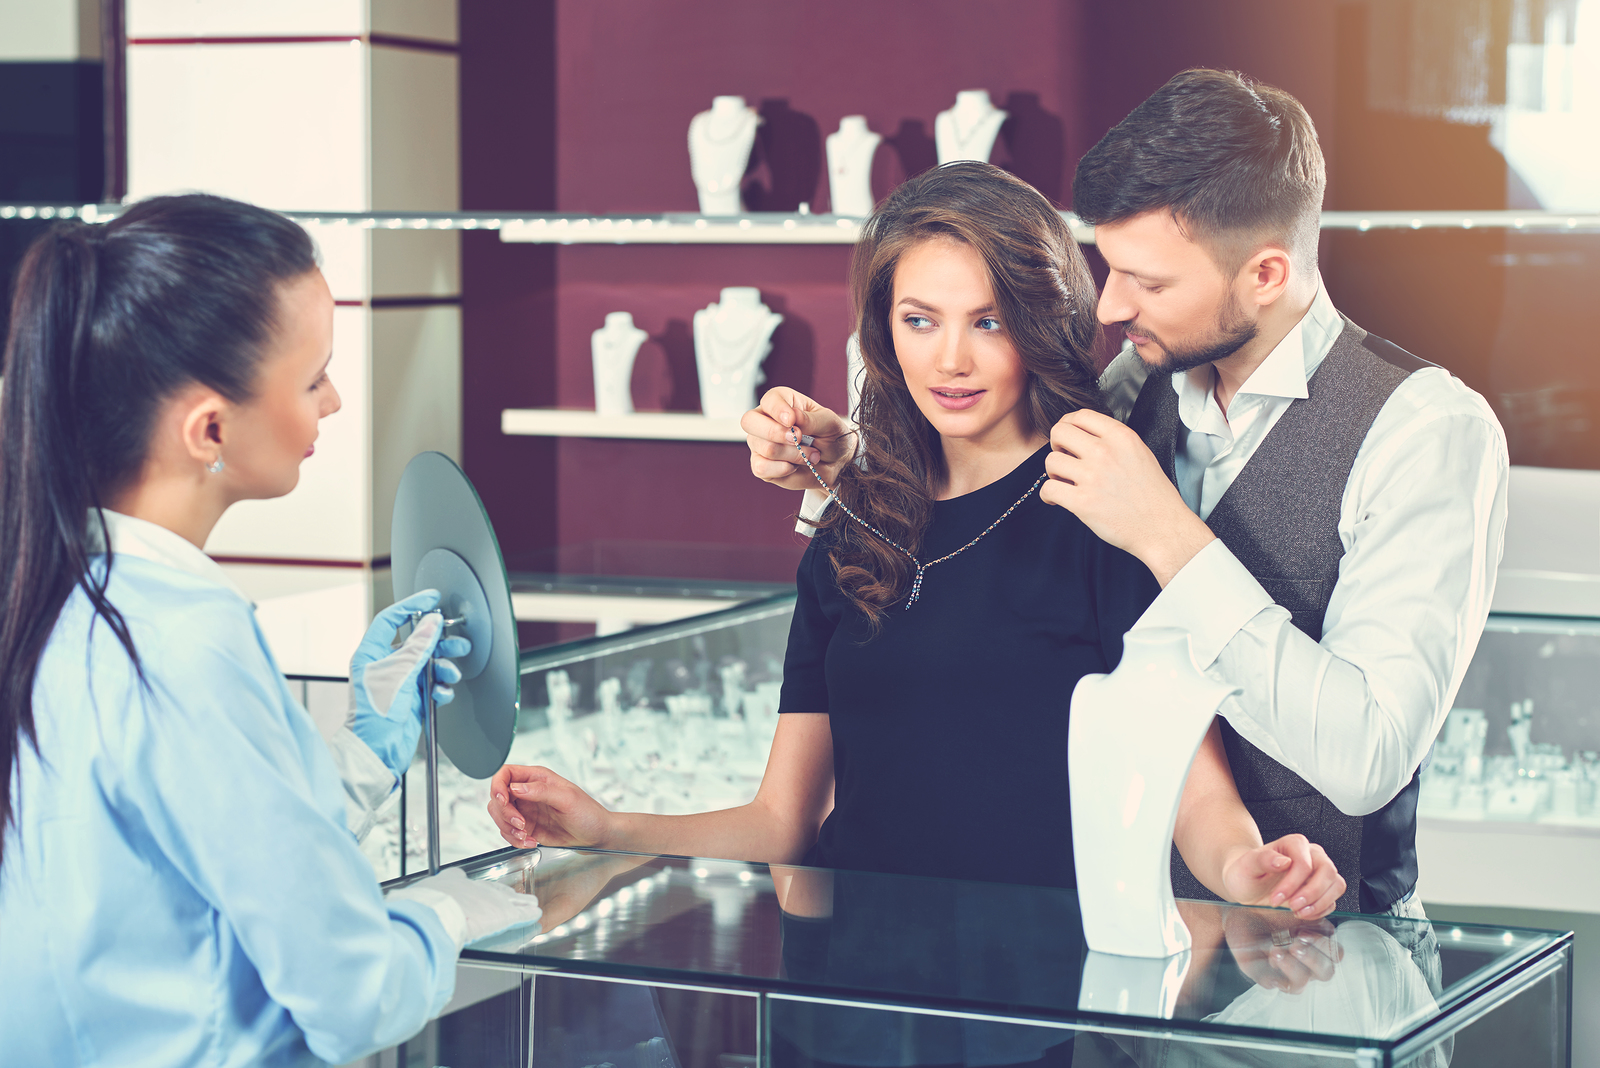 How Retailers Can Bounce Back From COVID-19 by Creating an Unforgettable Customer Experience